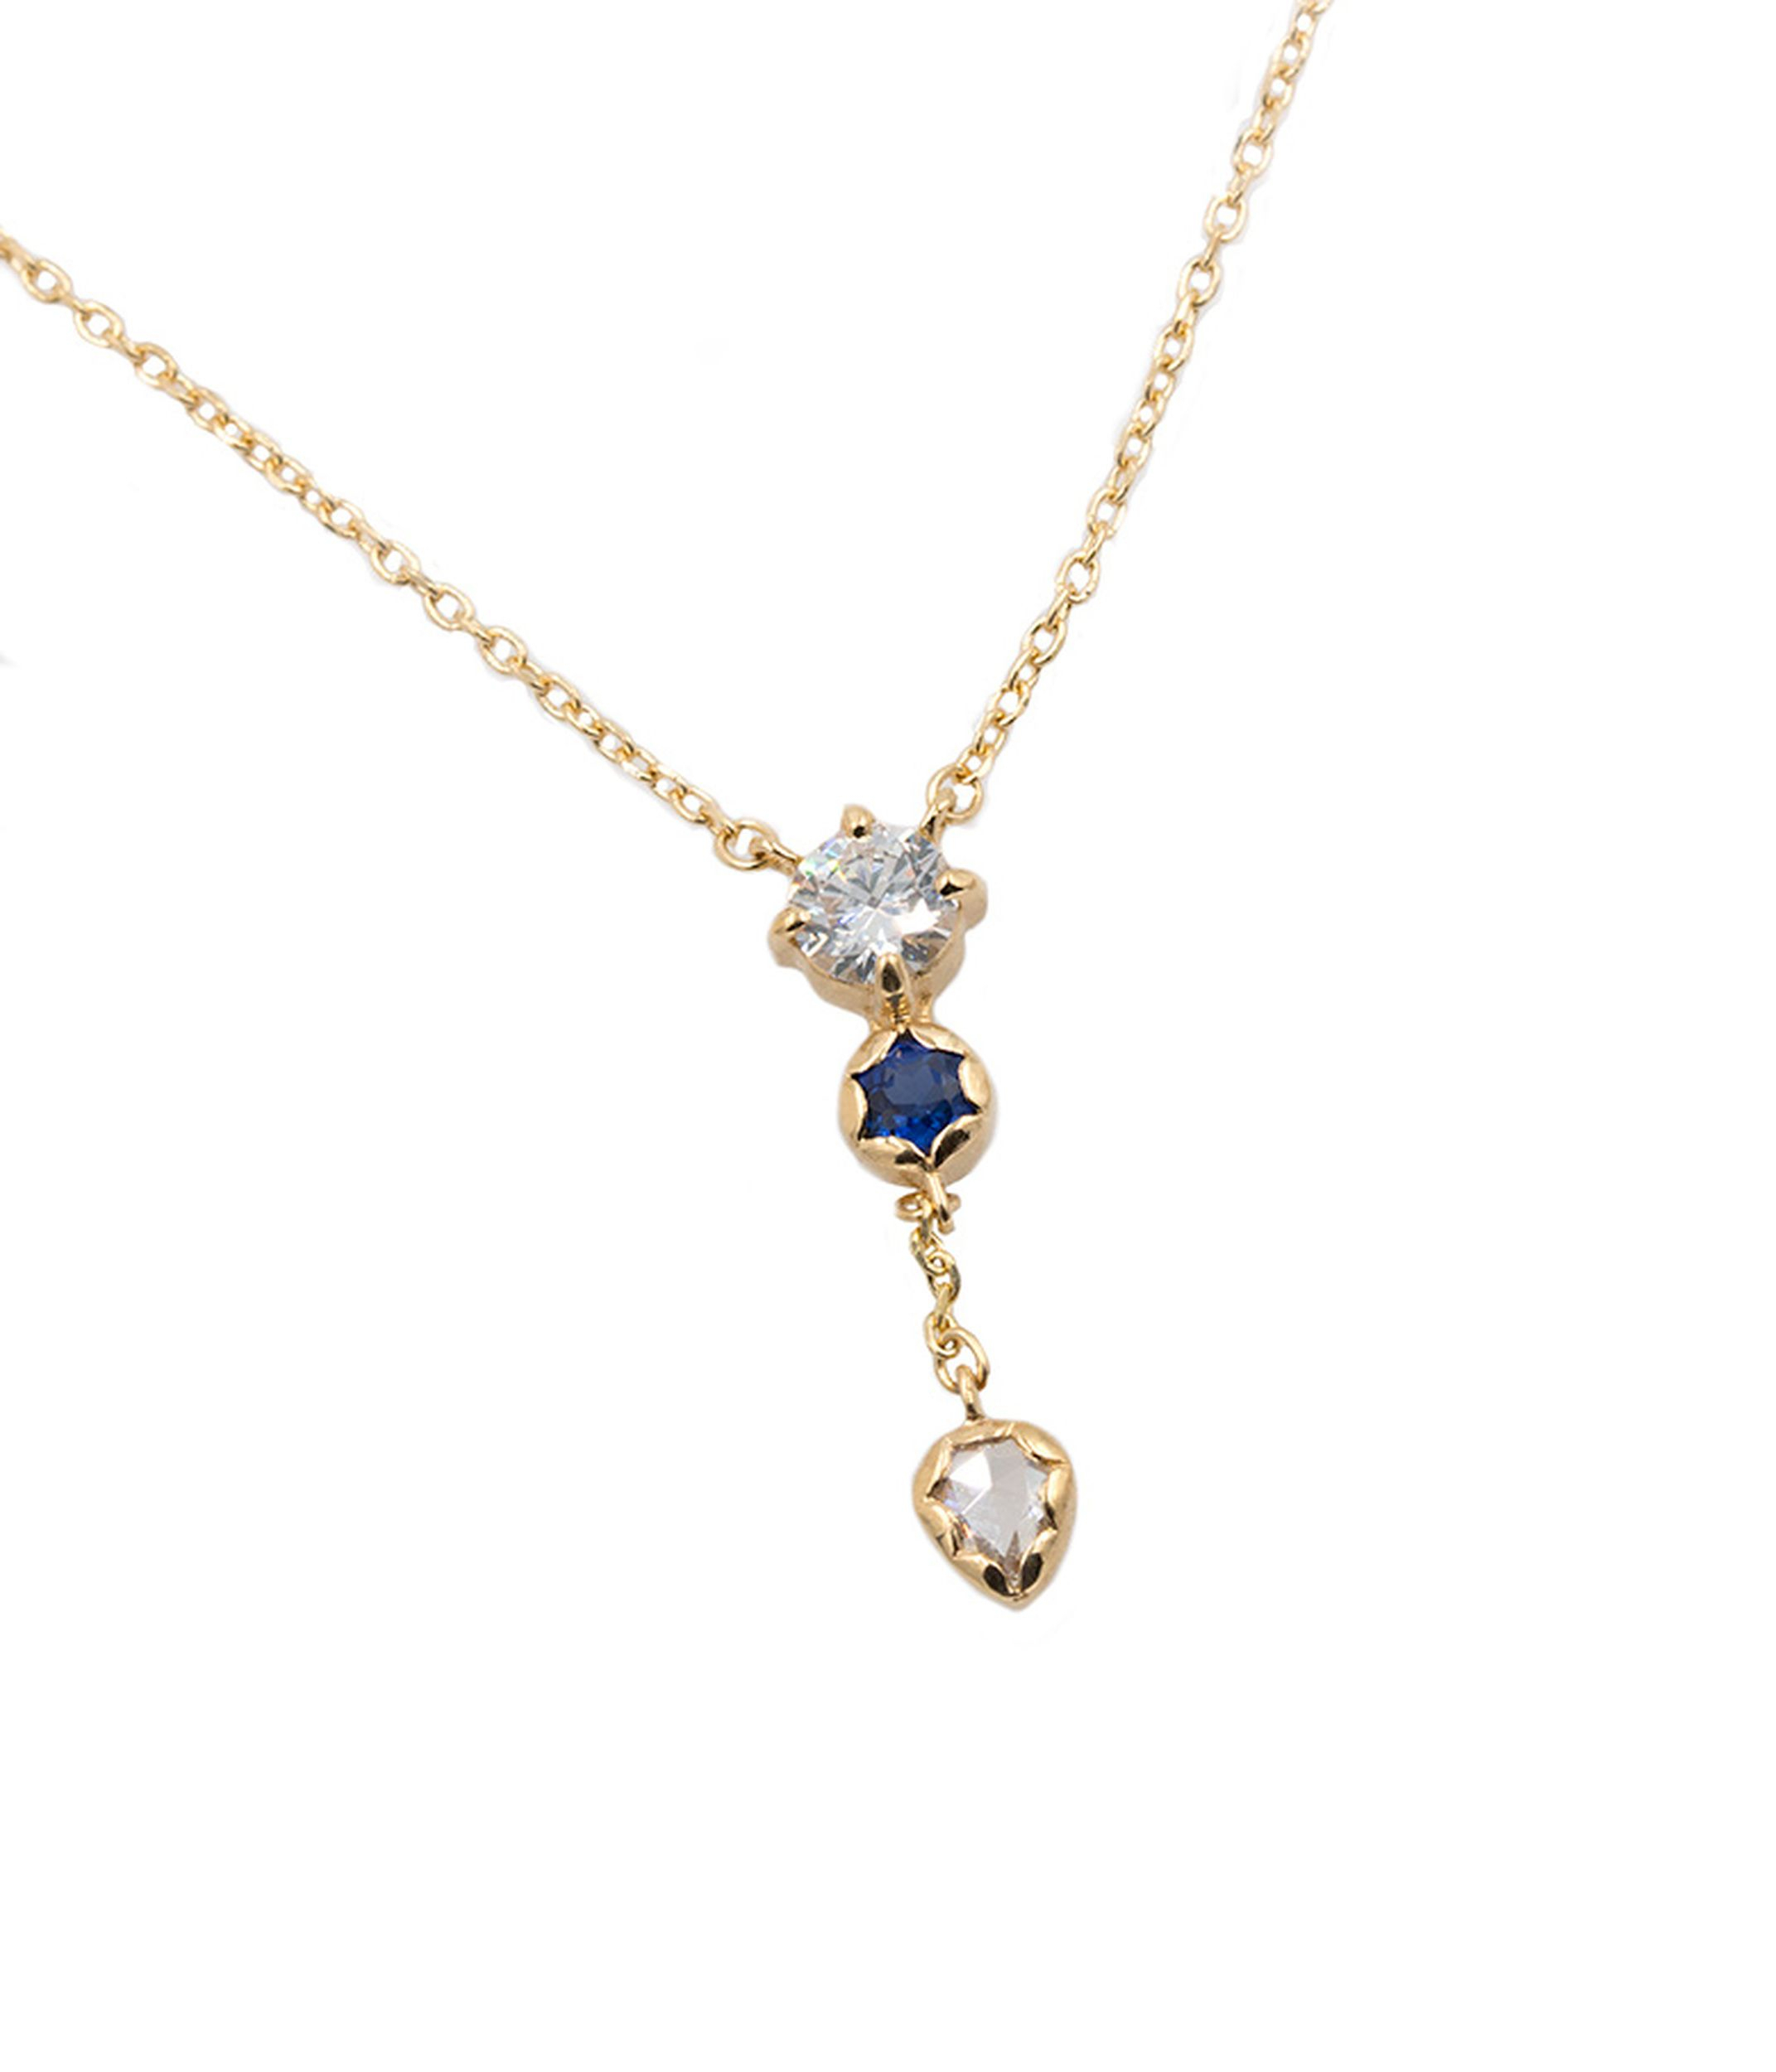 18K Diamond And Blue Sapphire Lariat Necklace | Clothing In With Most Recent Lariat Sapphire And Diamond Necklaces (View 2 of 25)